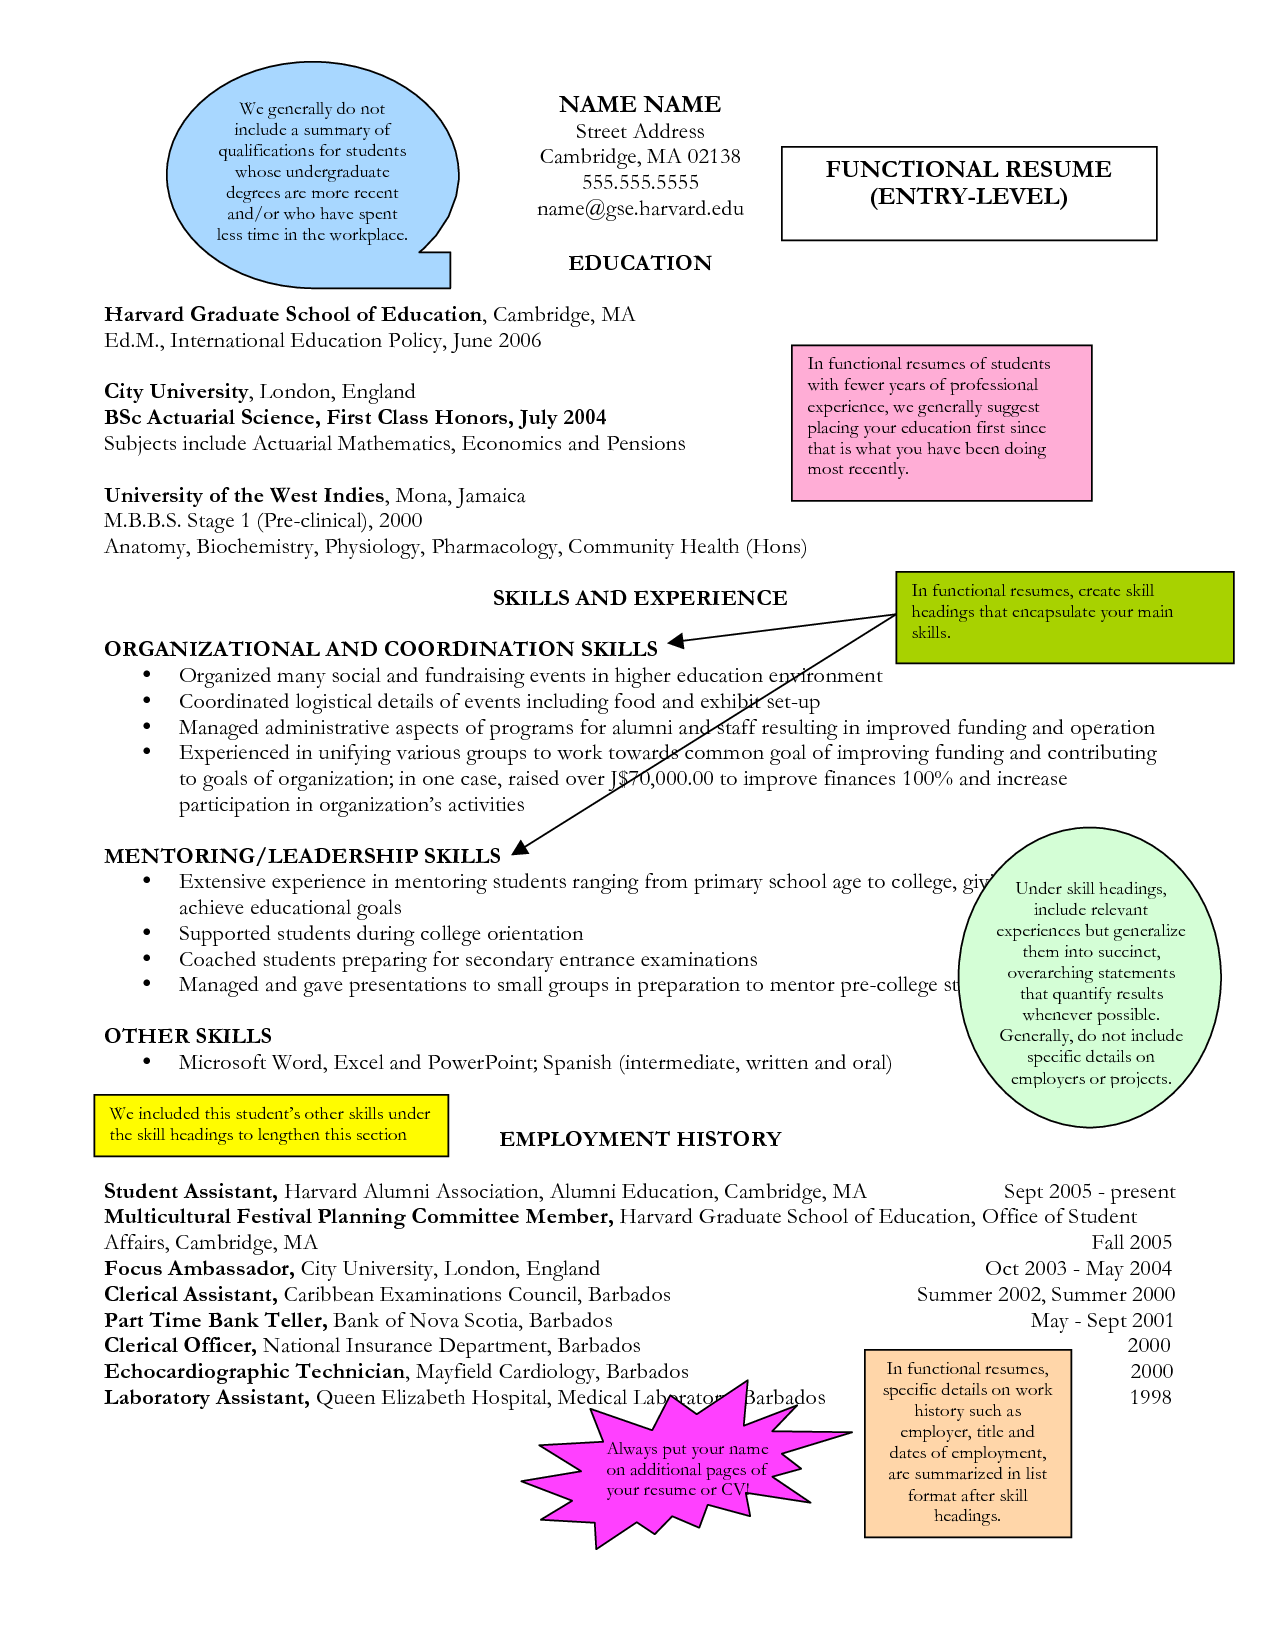 Samples Of Entry Level Resumes Entry Level Functional Resume Google Search Administrative